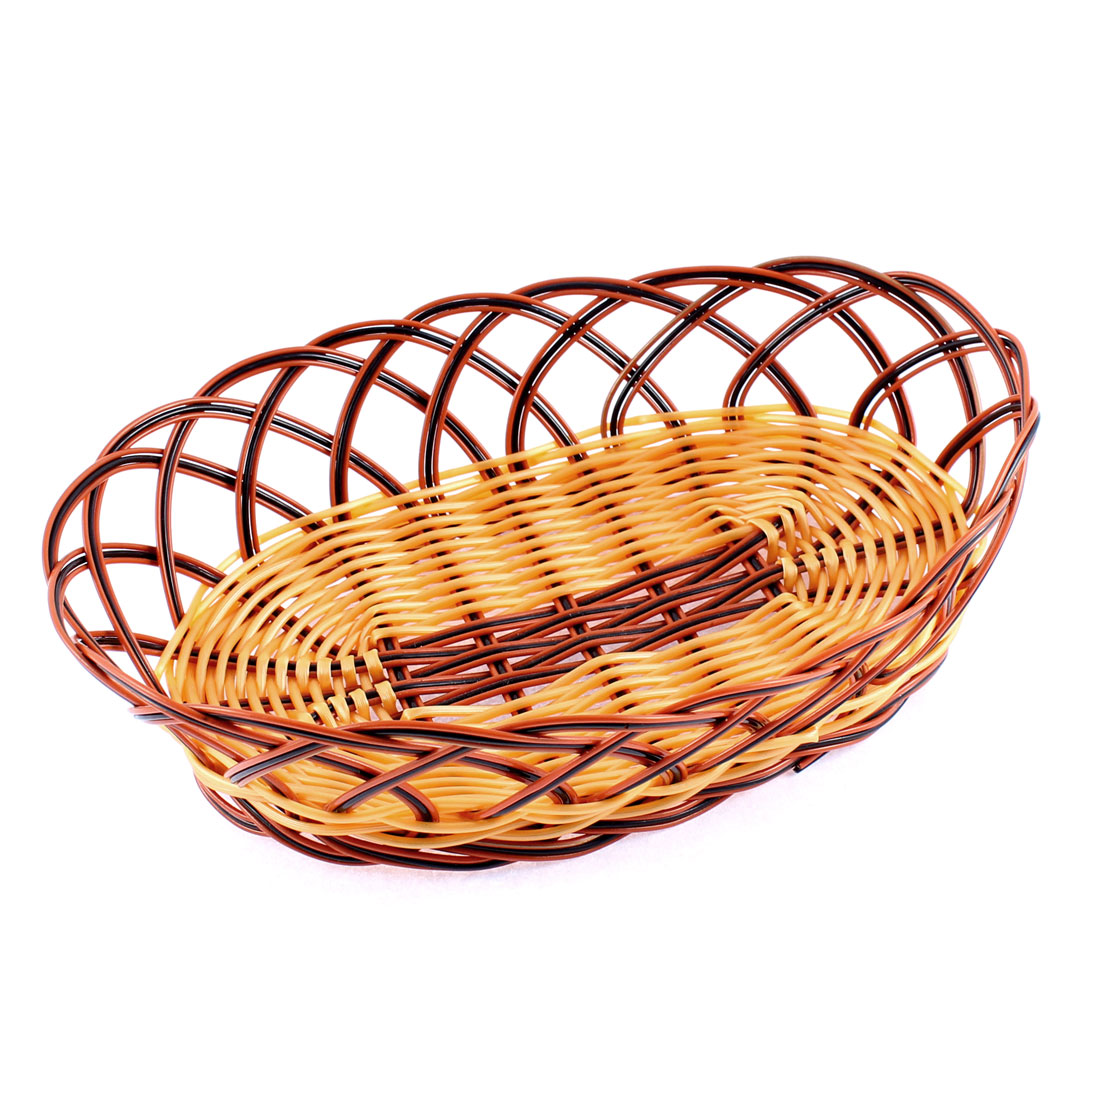 Plastic Braided Basket Fruit Vegetable Container Holder Yellow Red Black